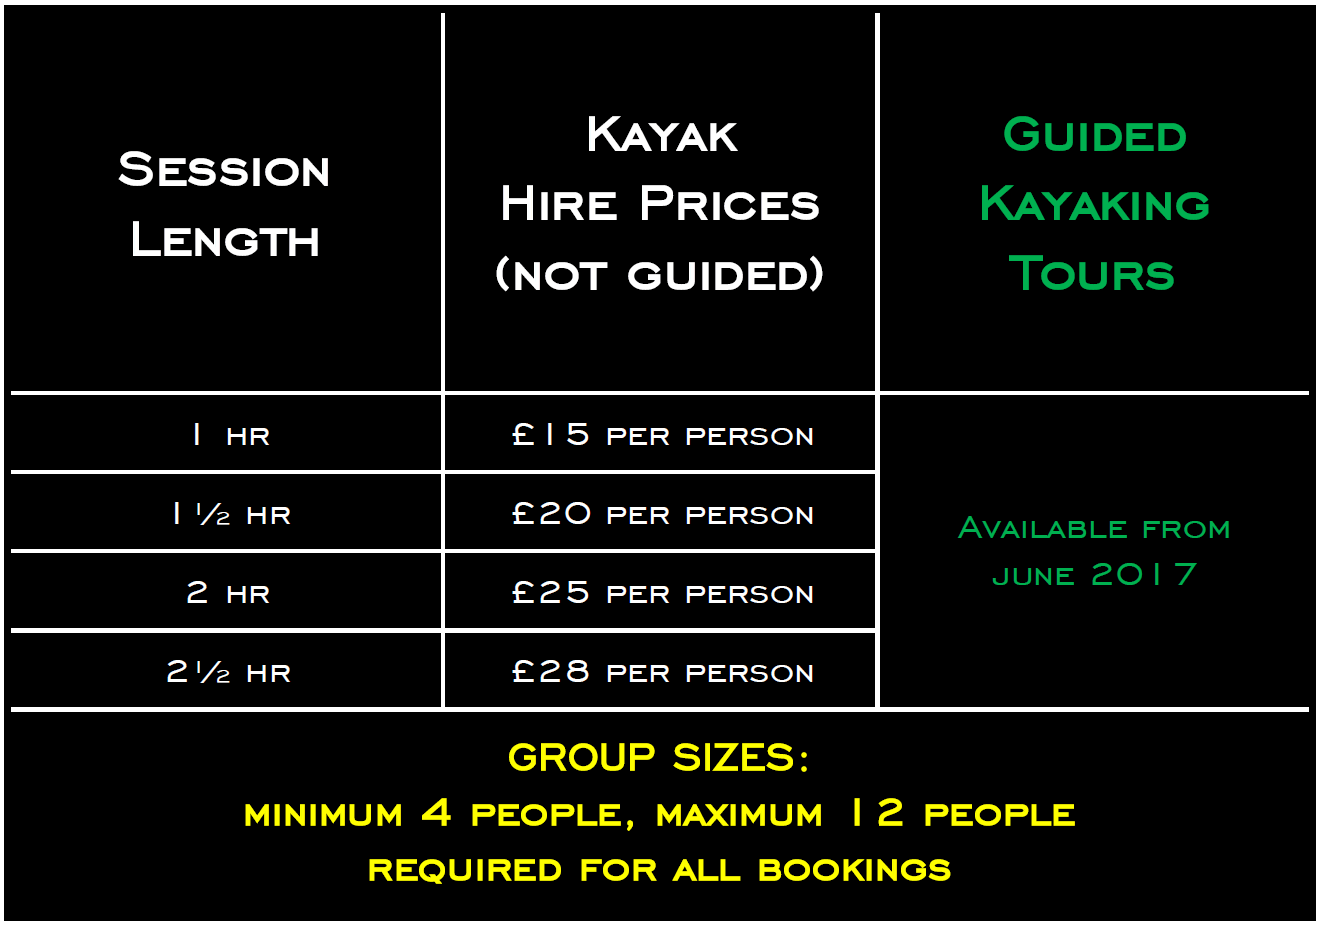 kayak hire prices Love Kayaking